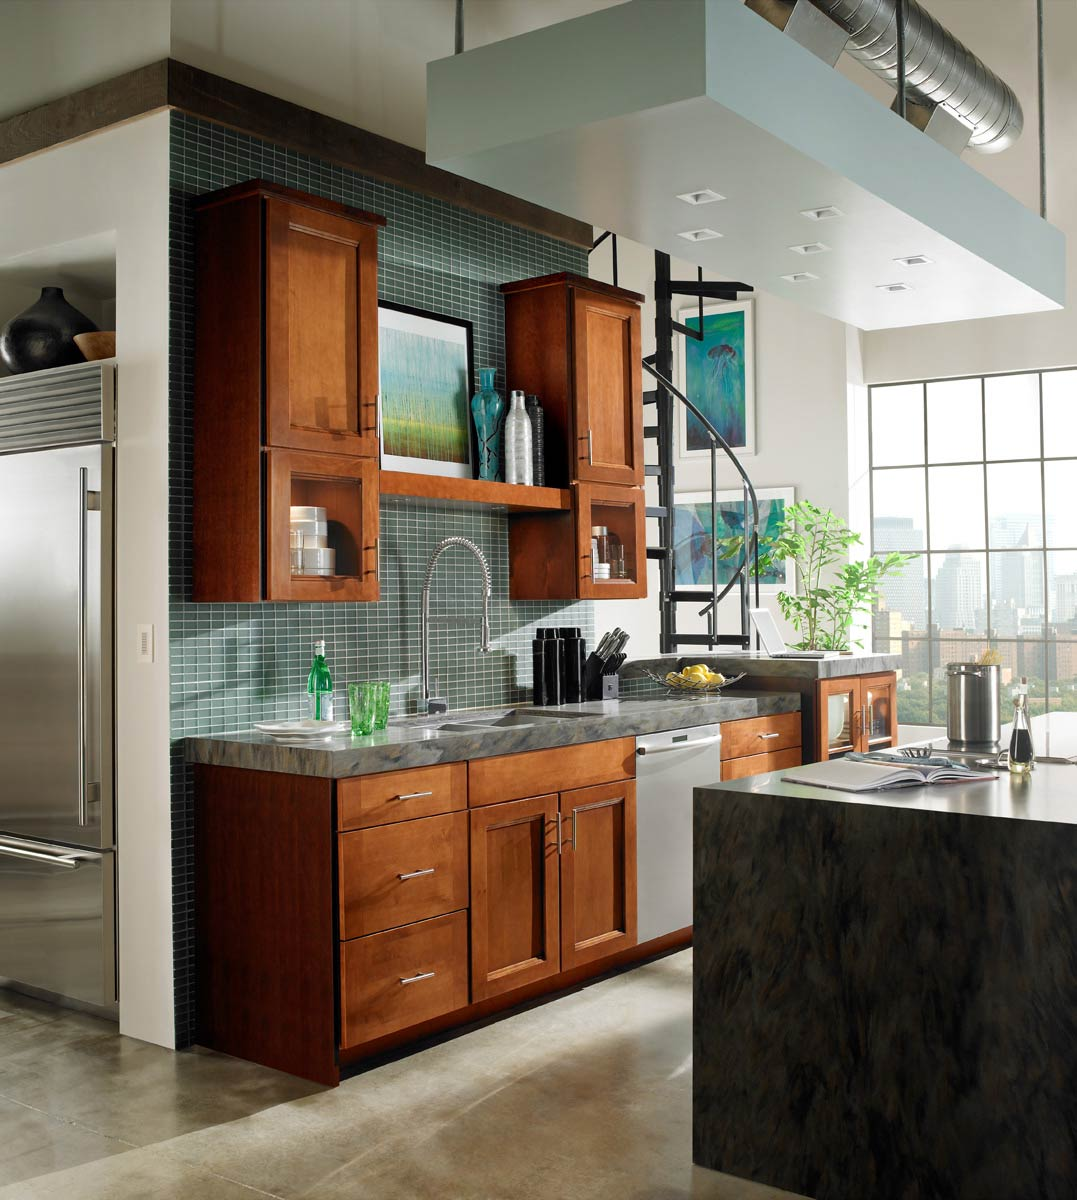 Waypoint Kitchen Style 420T in Maple Auburn Glaze